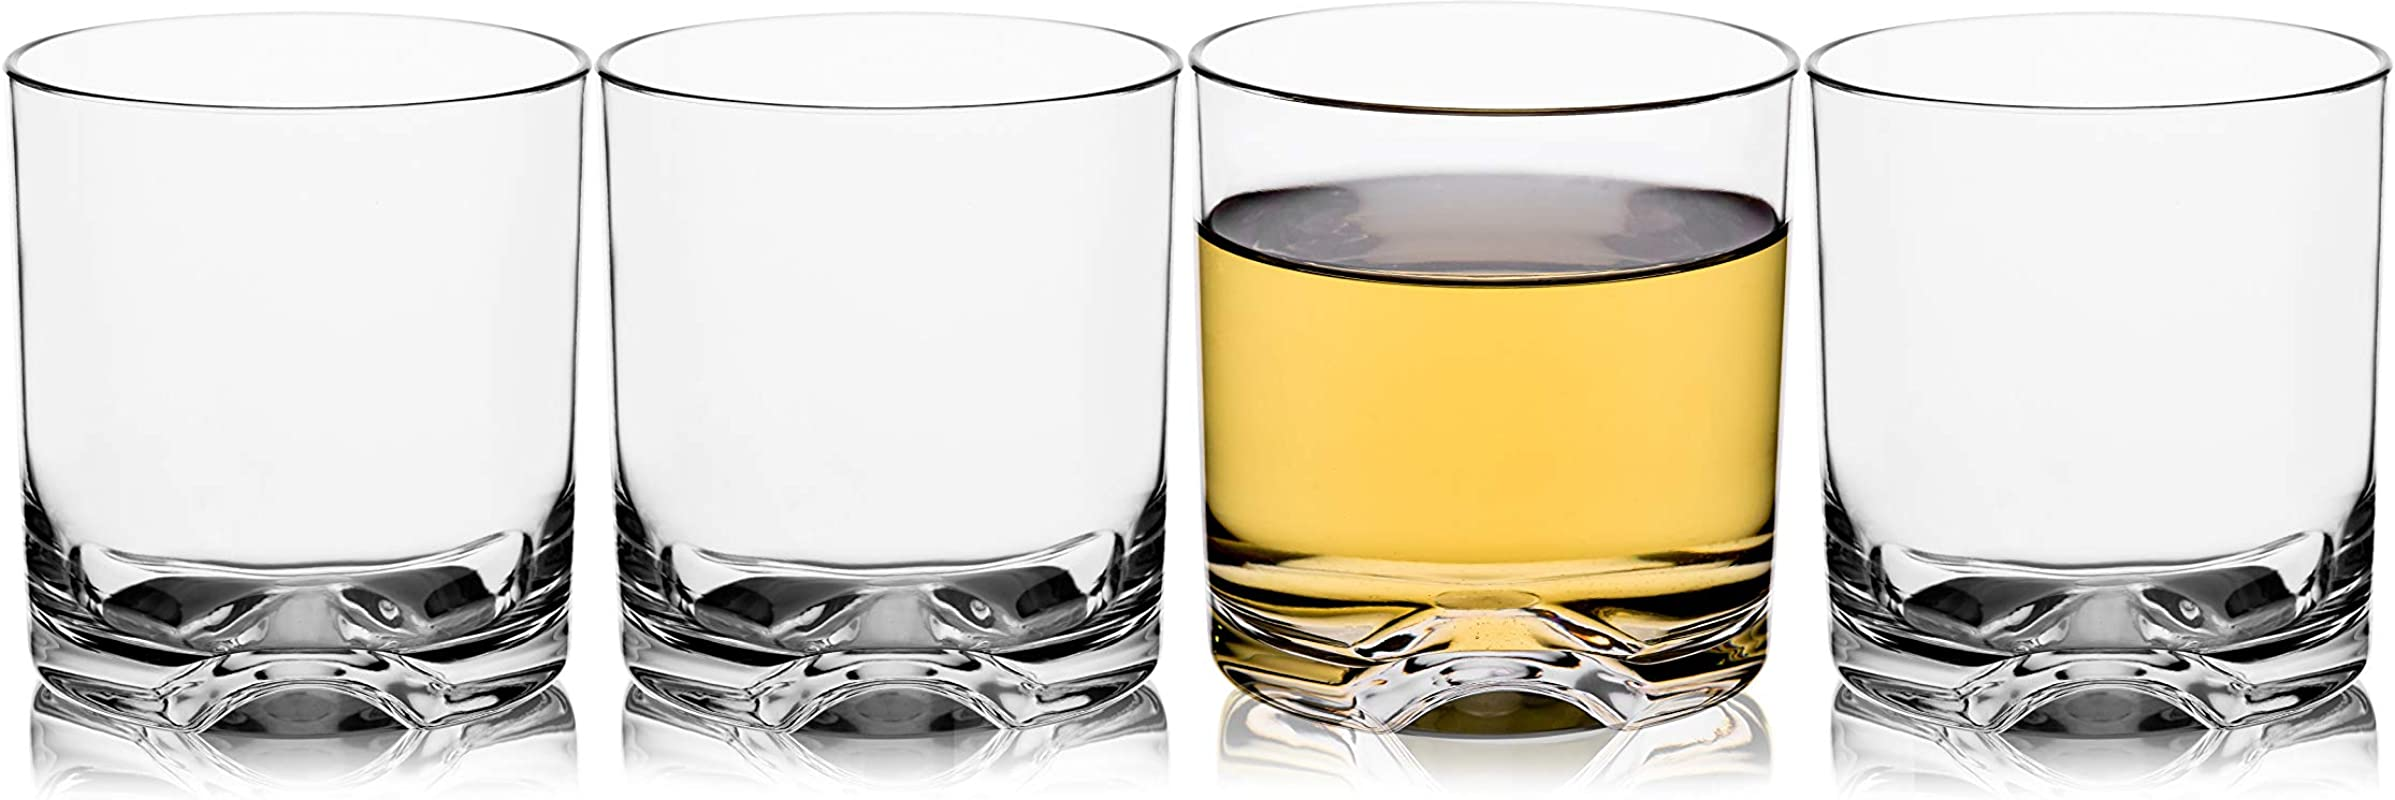 Unbreakable Tritan Plastic Whiskey Rocks Glasses Tumblers Double Old Fashioned Cups For Drinking Beer Cocktails Glassware 9 OZ Shatterproof BPA FREE Dishwasher Safe Set Of 4